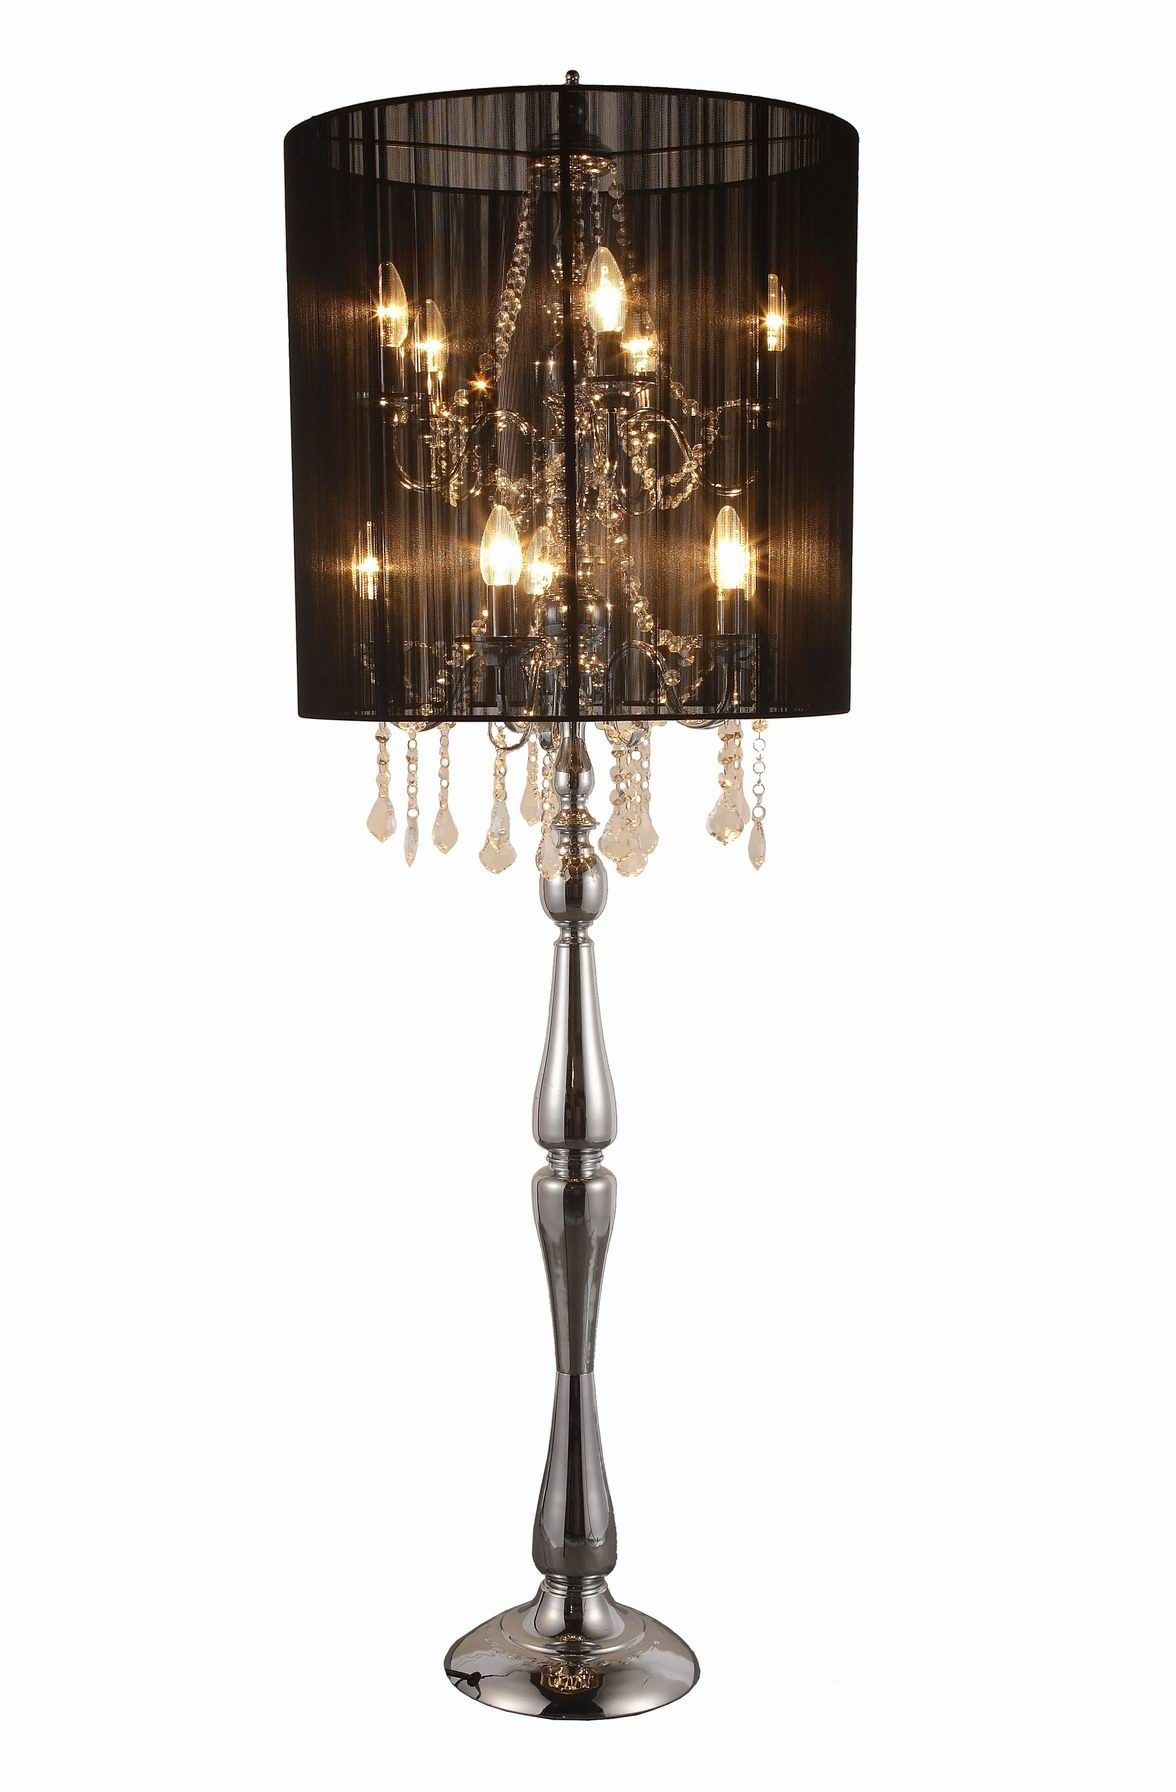 Remodeling Chandelier Floor Lamp Assban Com Lampsstyles Older Light Fixtures Unless They Have A Classic